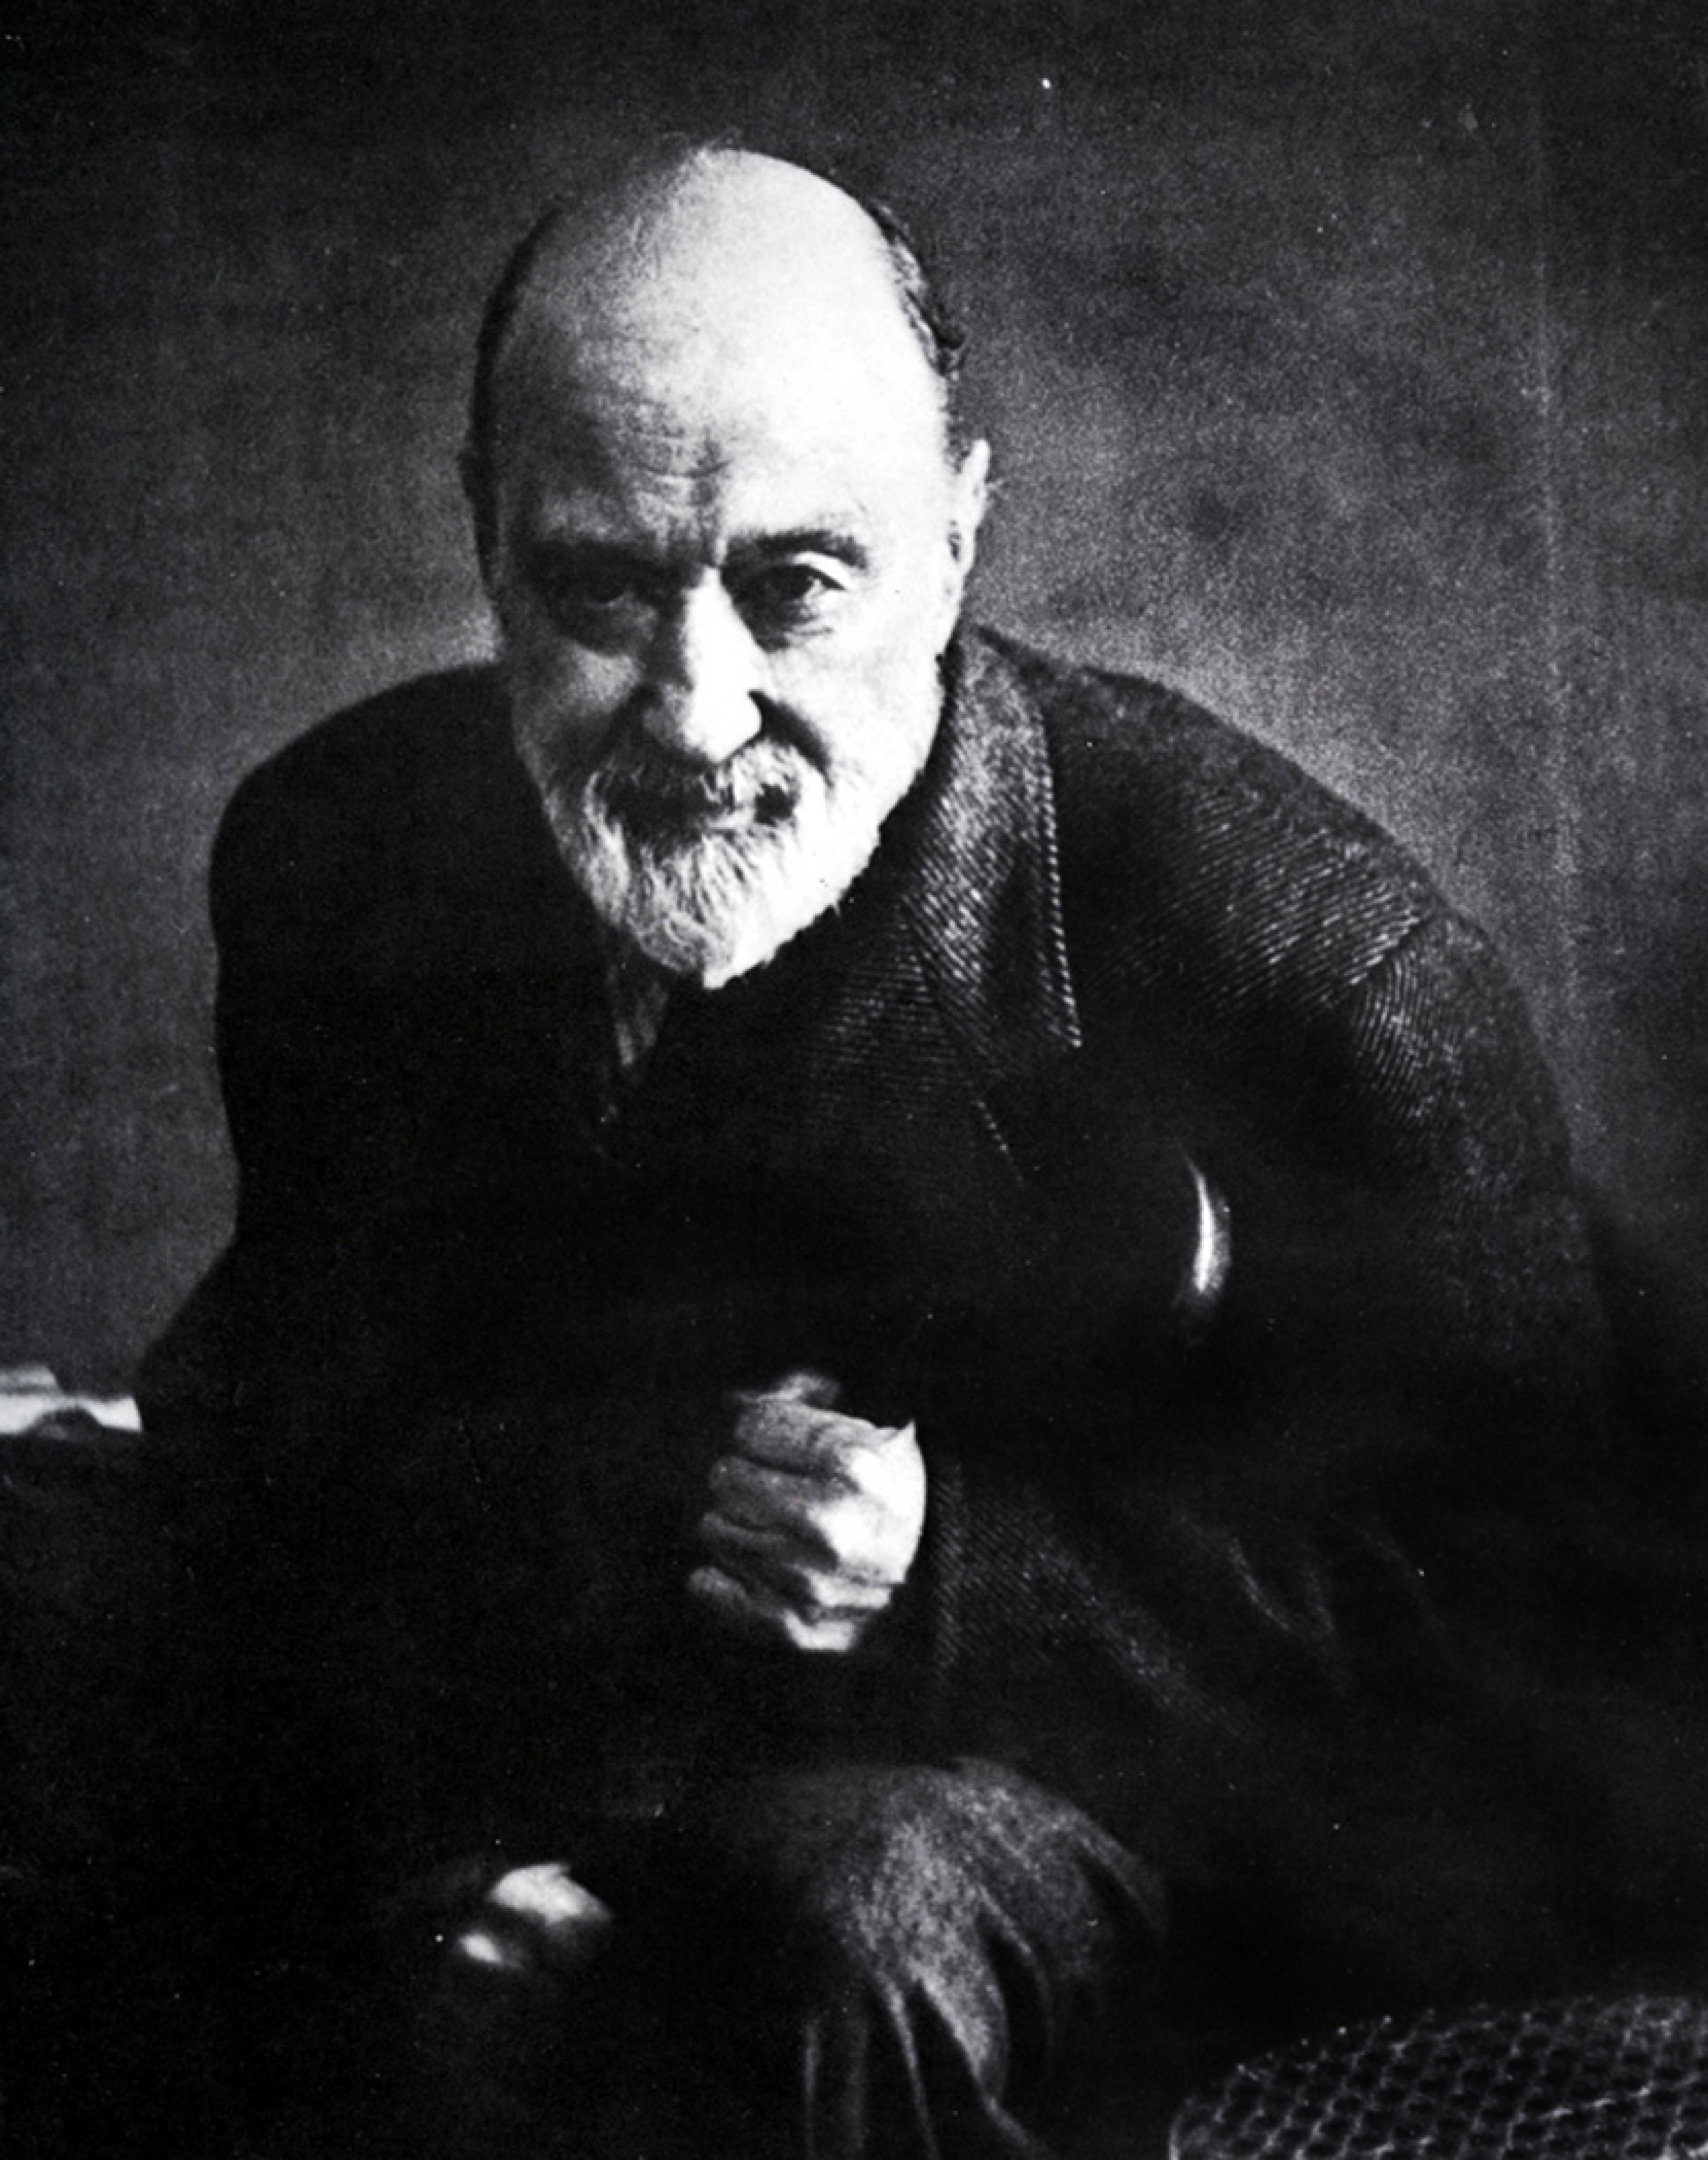 publicity image for Captured Memories: The Songs of Charles Ives